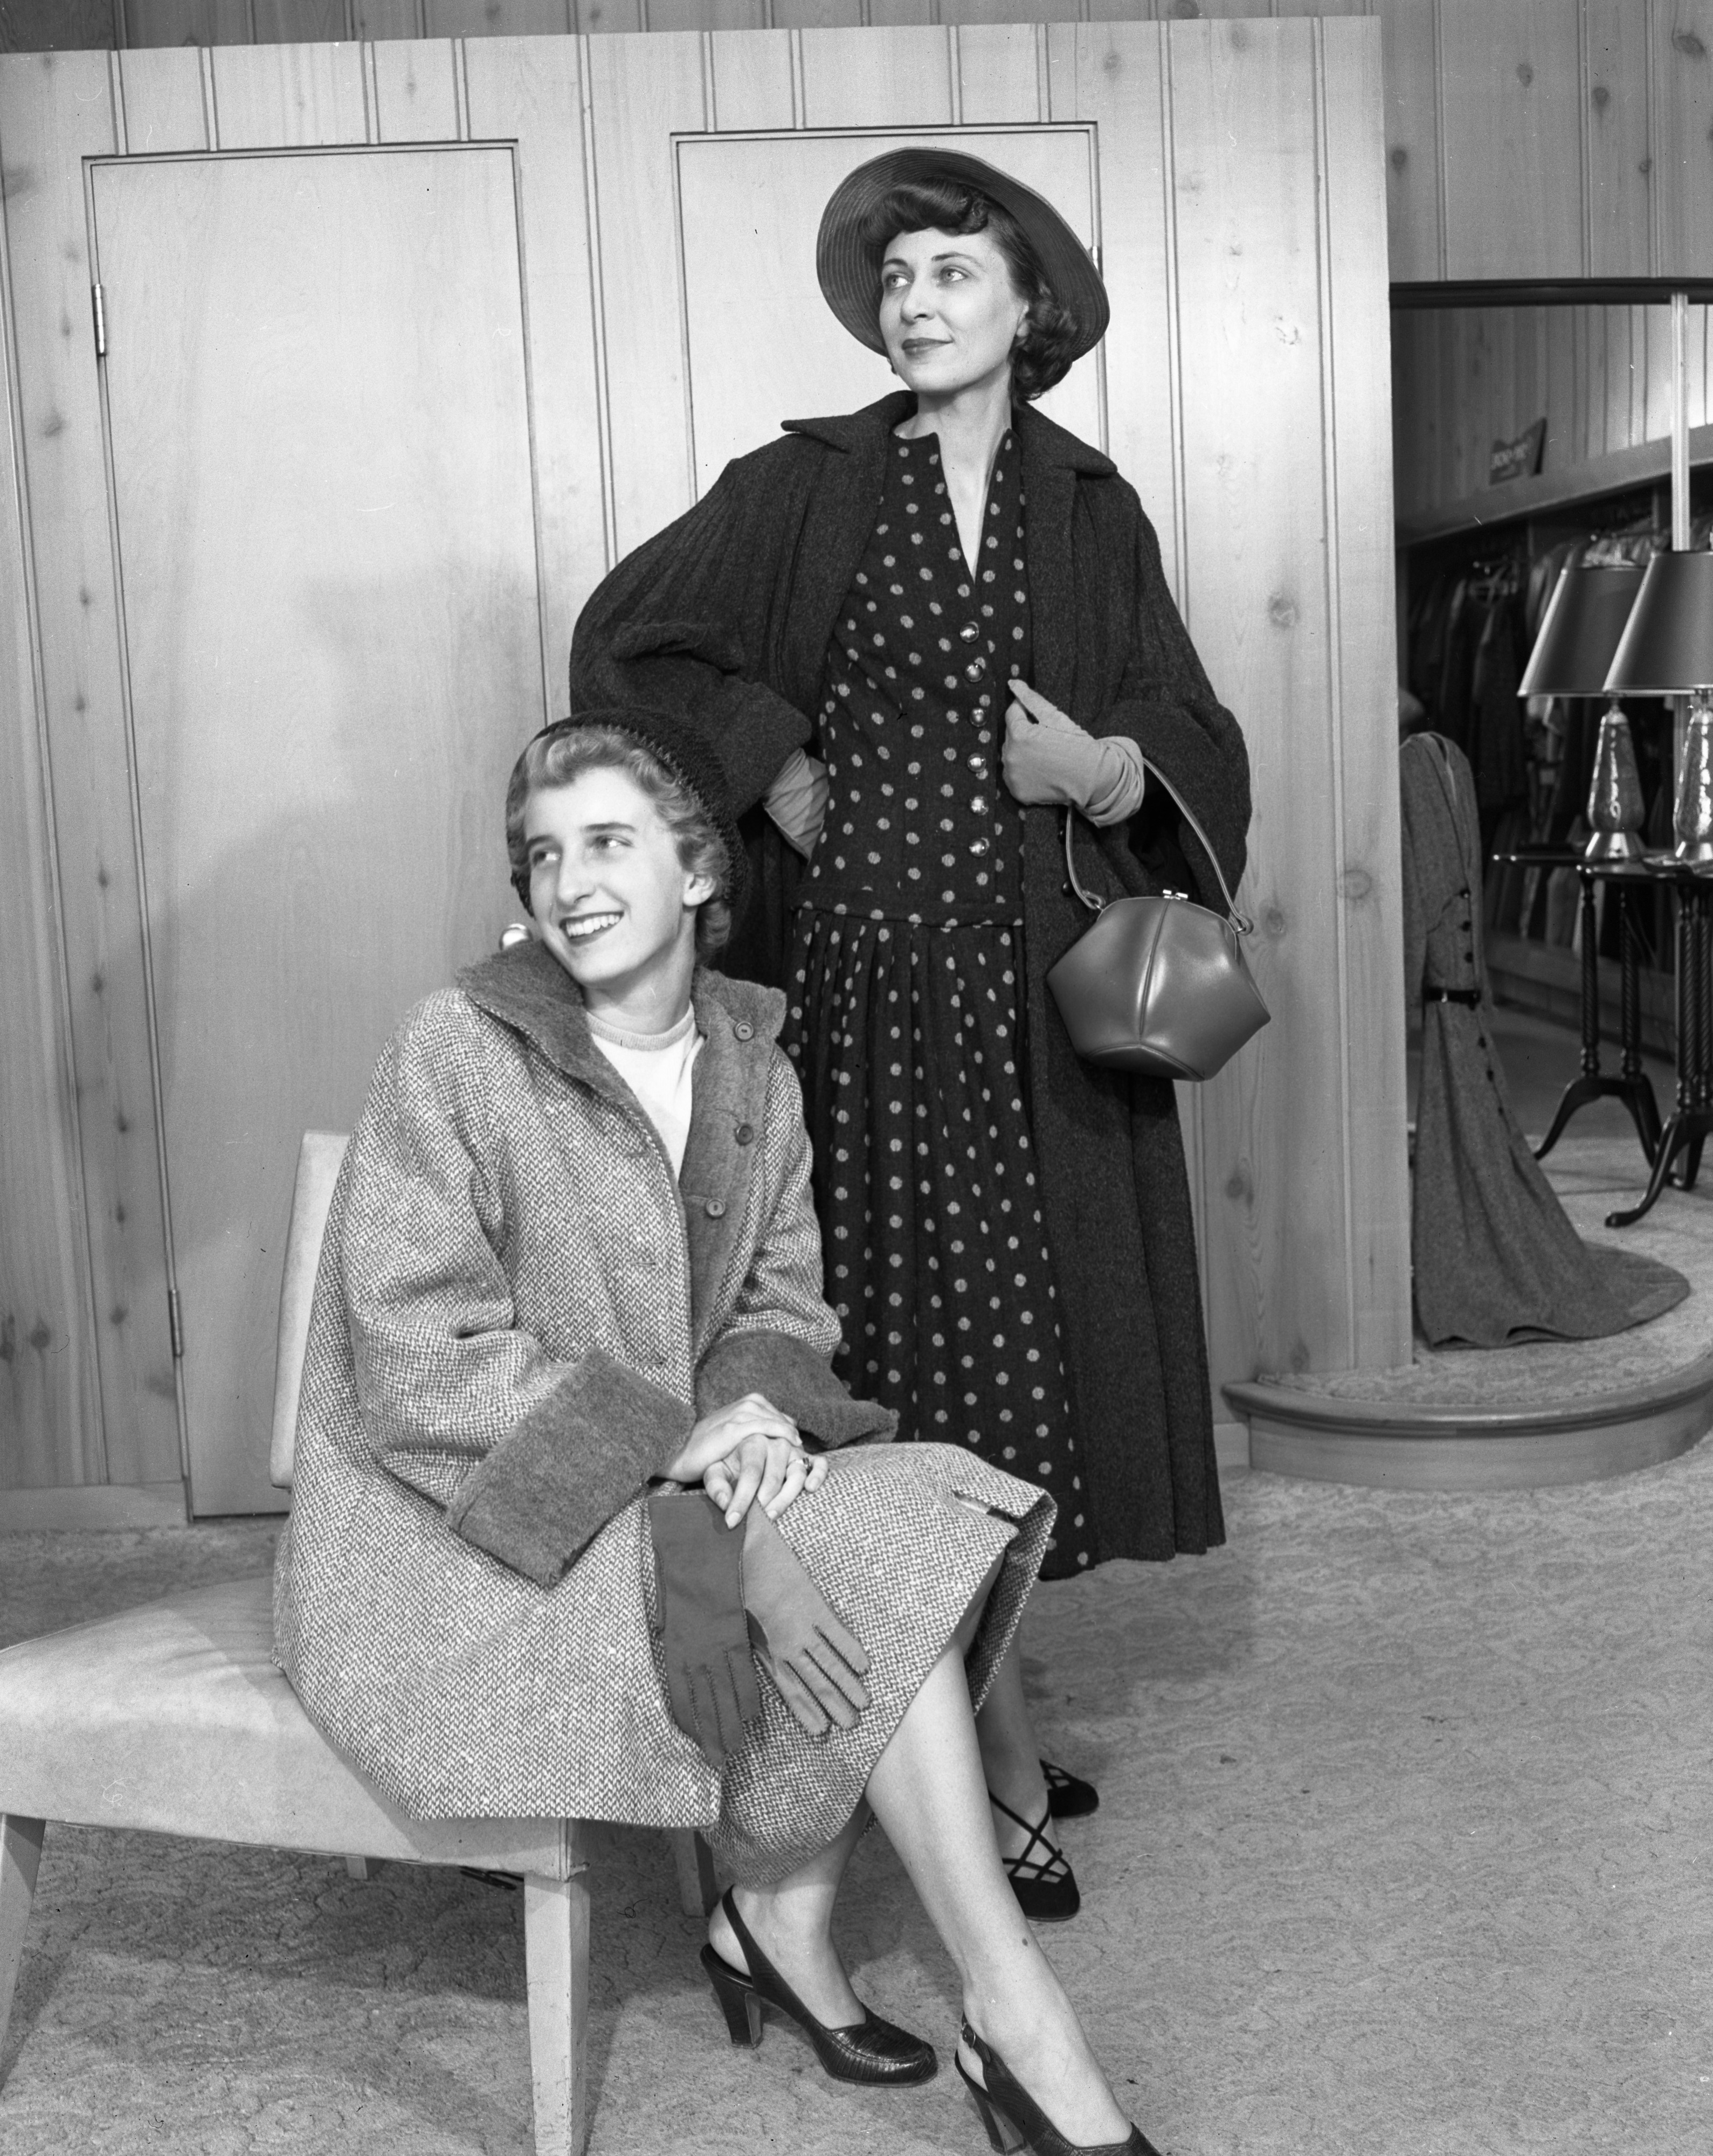 Mary Lou Hutzel and Ann Buhr model autumn fashions in the Hutzel Shop fashion show, August 1952 image